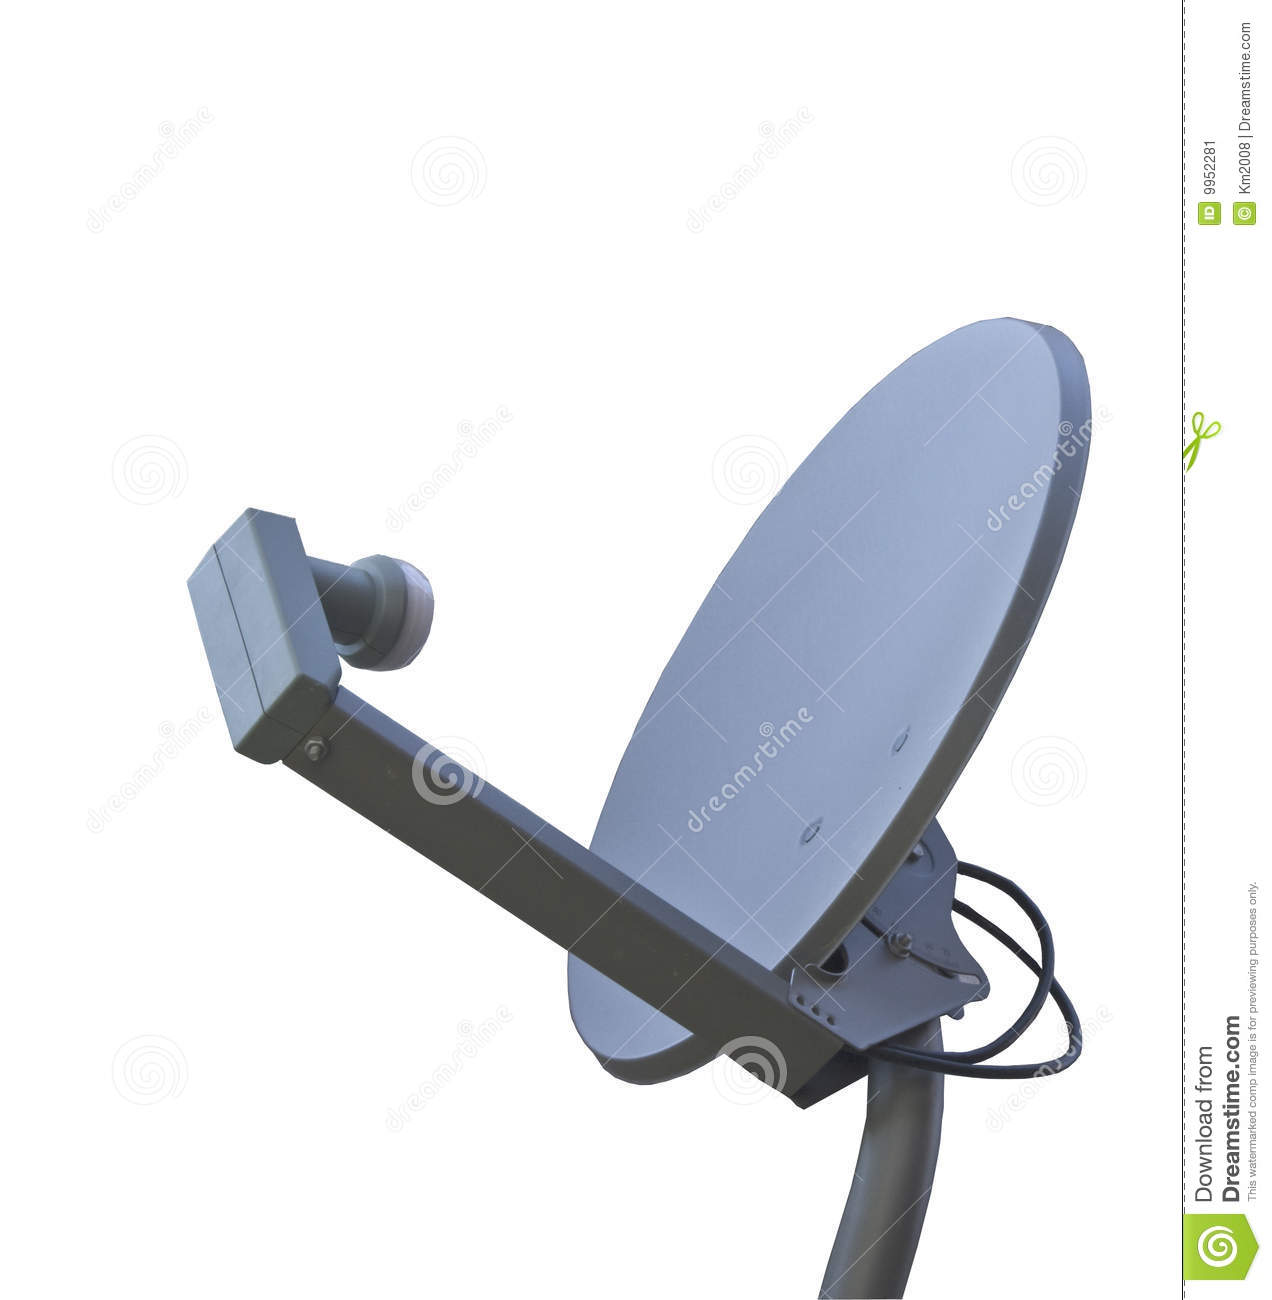 Isolated satellite dish with a single transponder.